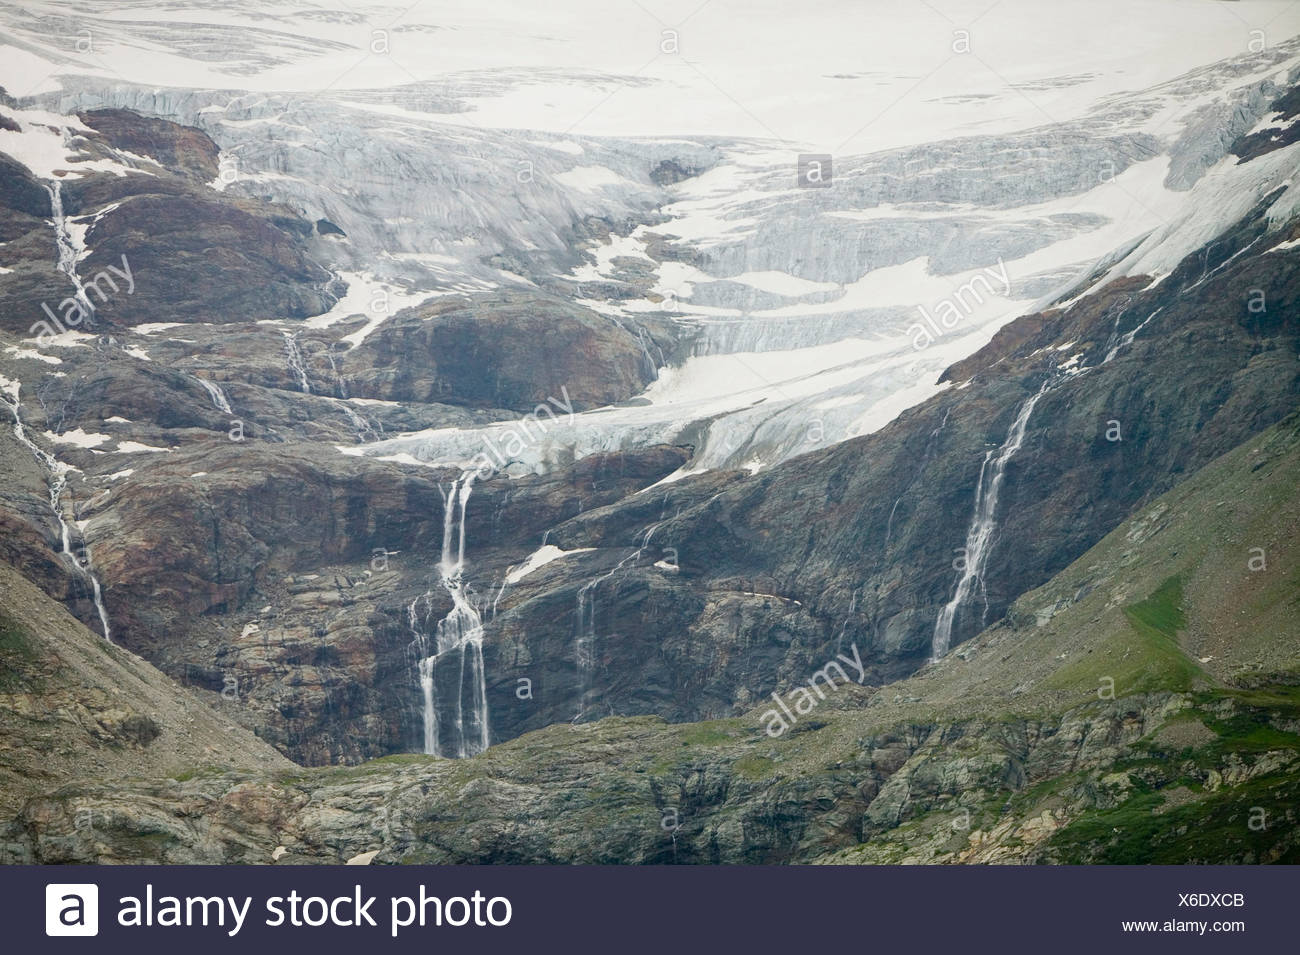 A rapidly receeding glacier above Alp Grum Switzerland below the Bernina Pass - Stock Image